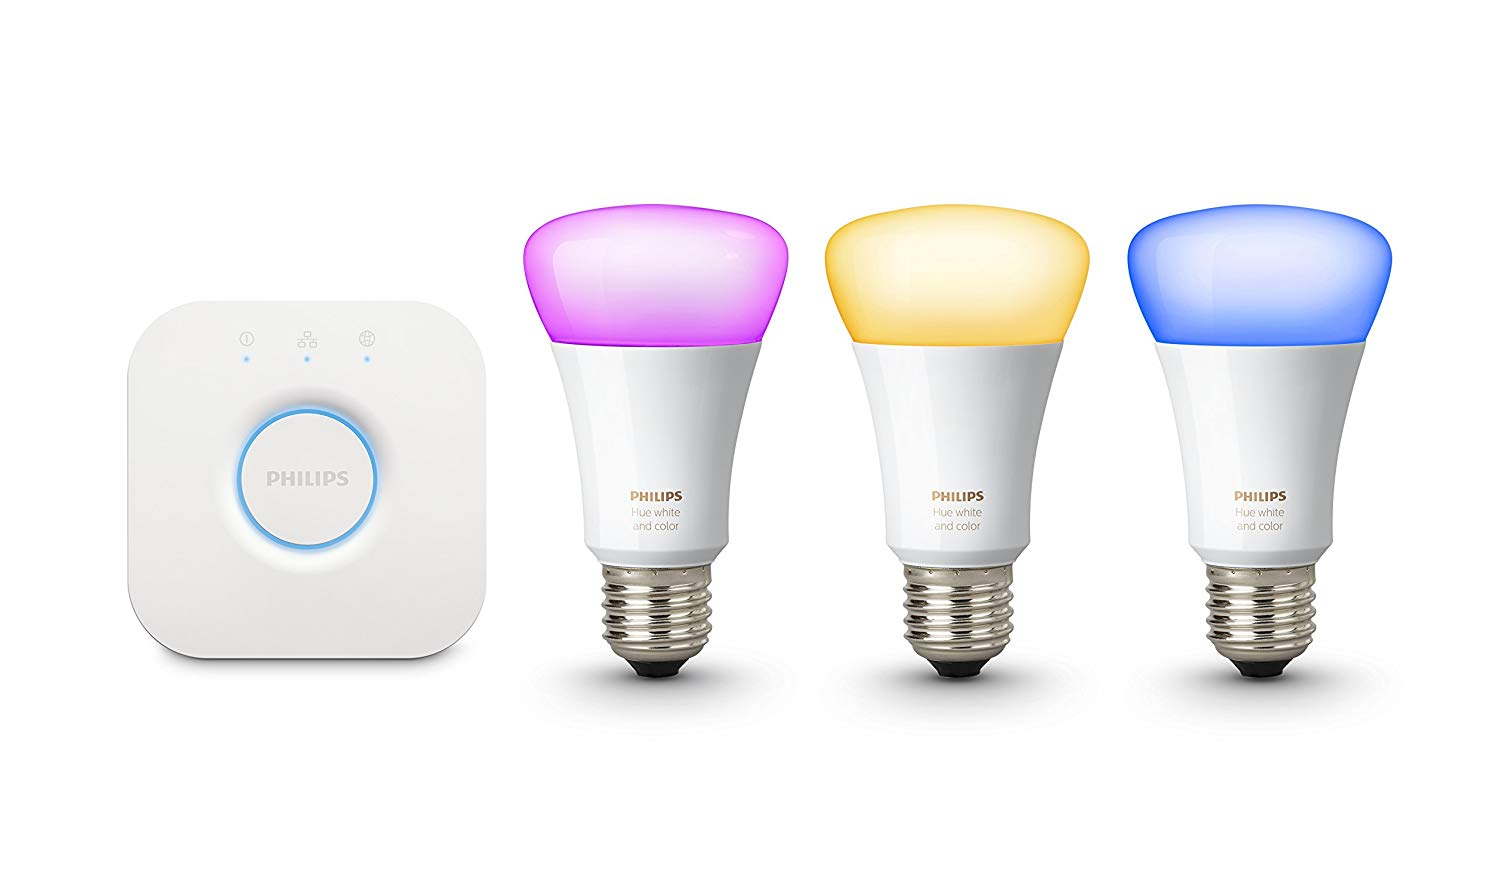 PHILIPS-Hue What are the Best Smart Home Devices of 2019?